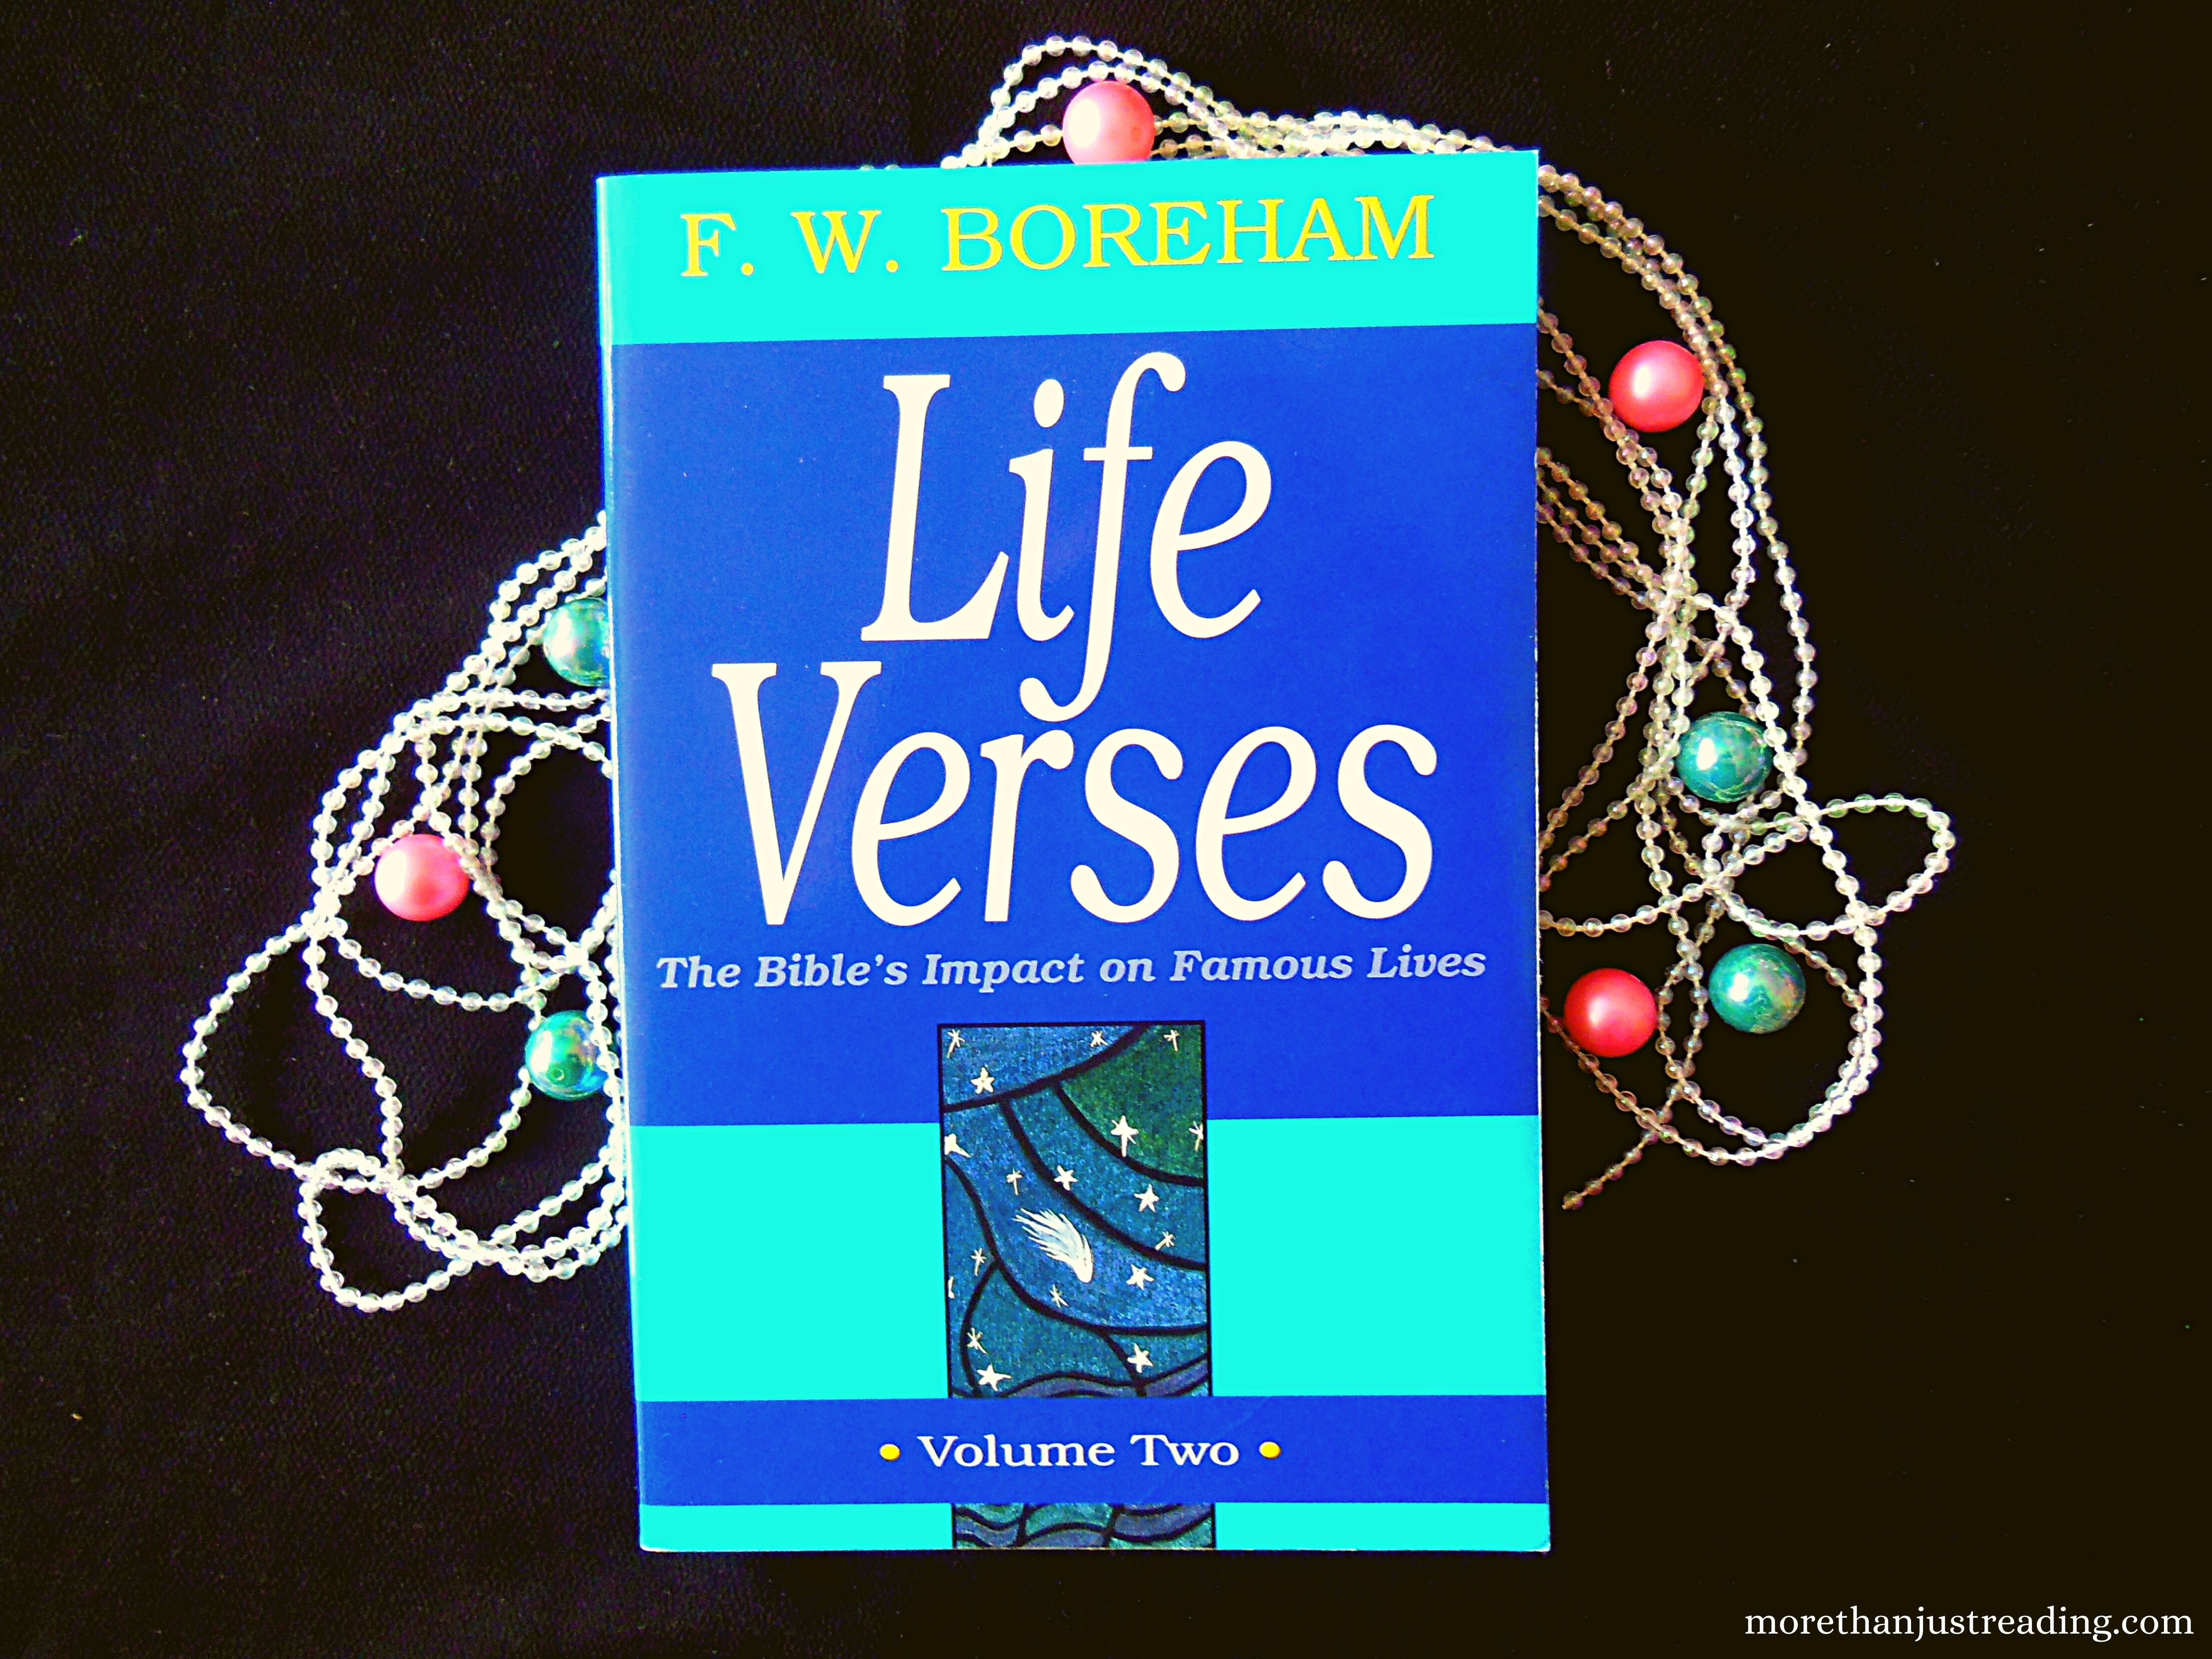 Copy of Live Verses by F. W. Boreham | A handful of stars